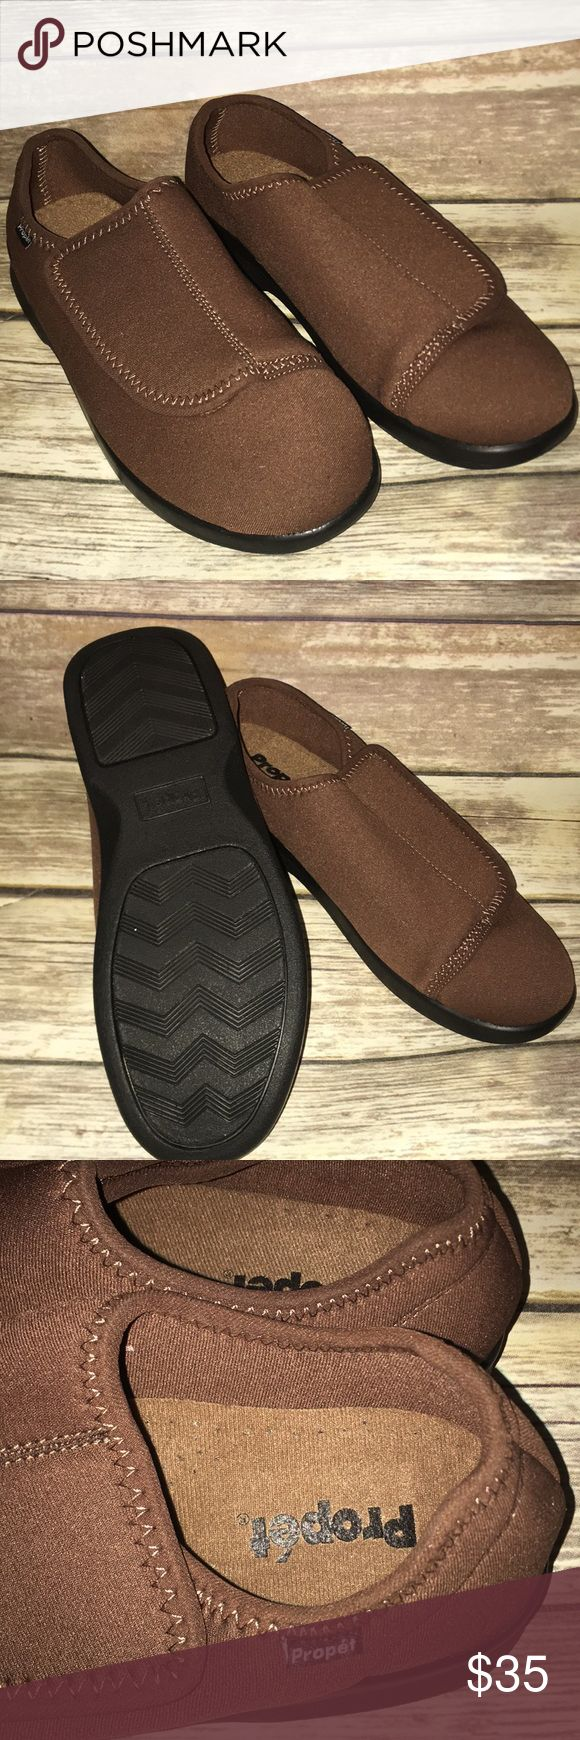 Propet Diabetic comfort shoes - NEW 10 NEVER WORN Velcro for easy on and off Post op approved Diabetic care comfort shoes  Non smoking home Size 10 Propet Shoes Loafers & Slip-Ons